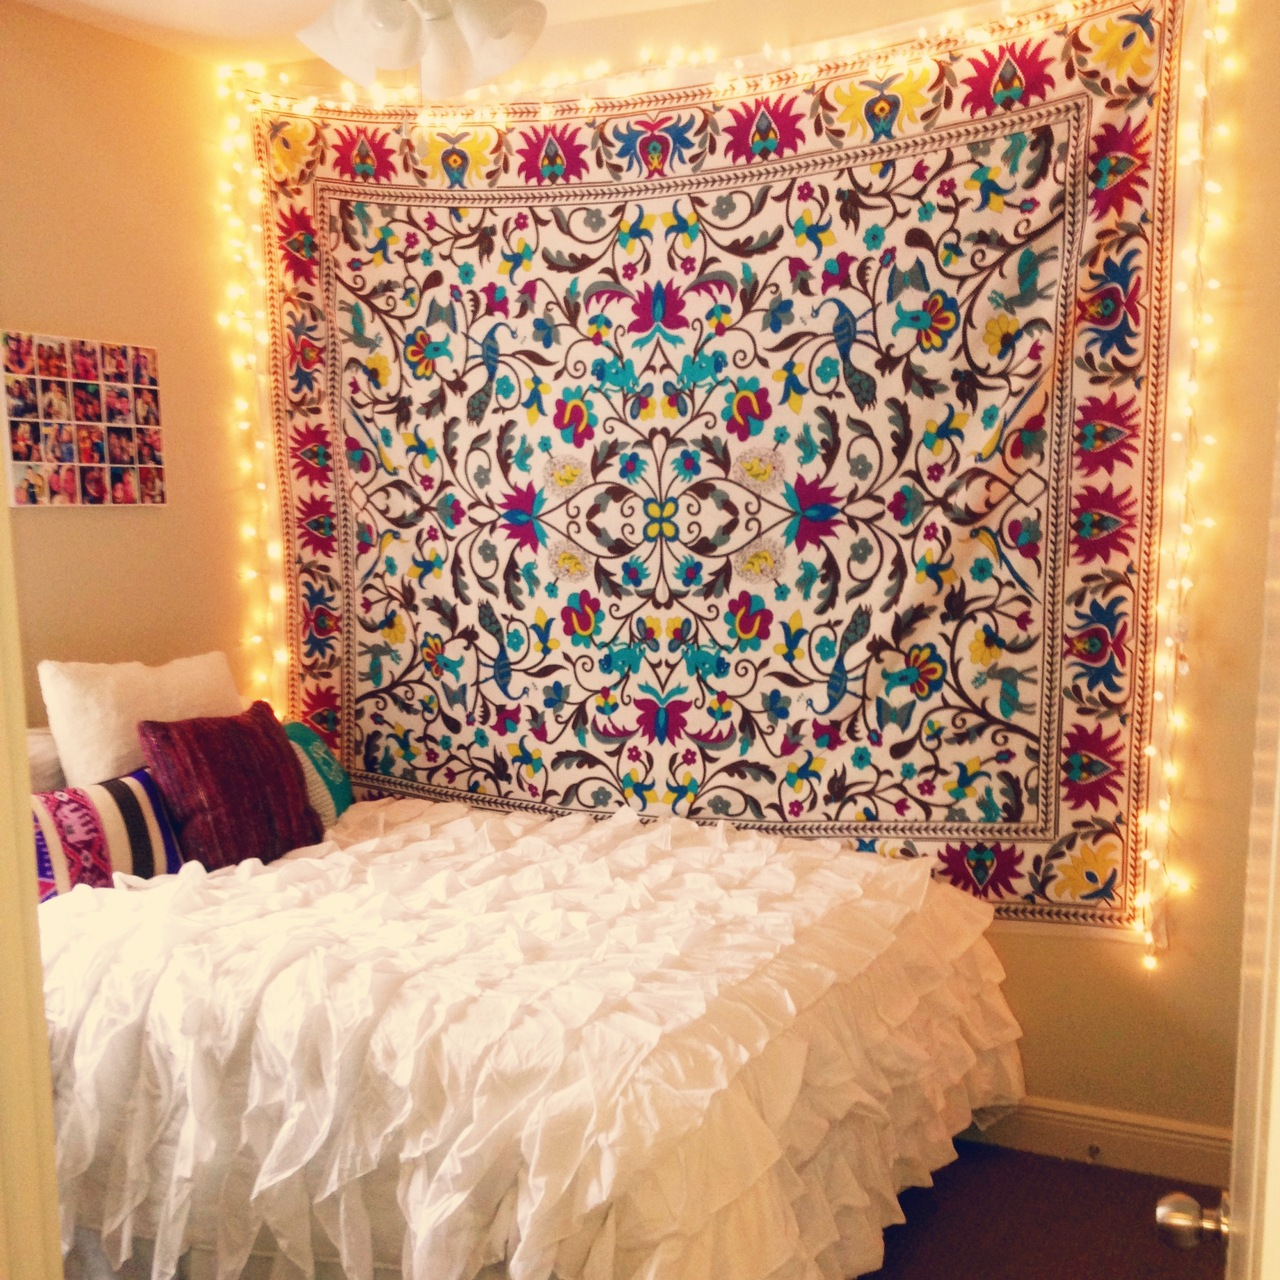 Decorating Ideas > Top 10 Dorm Room Themes  AdmitSee ~ 054341_Dorm Room Ideas Girl 2017